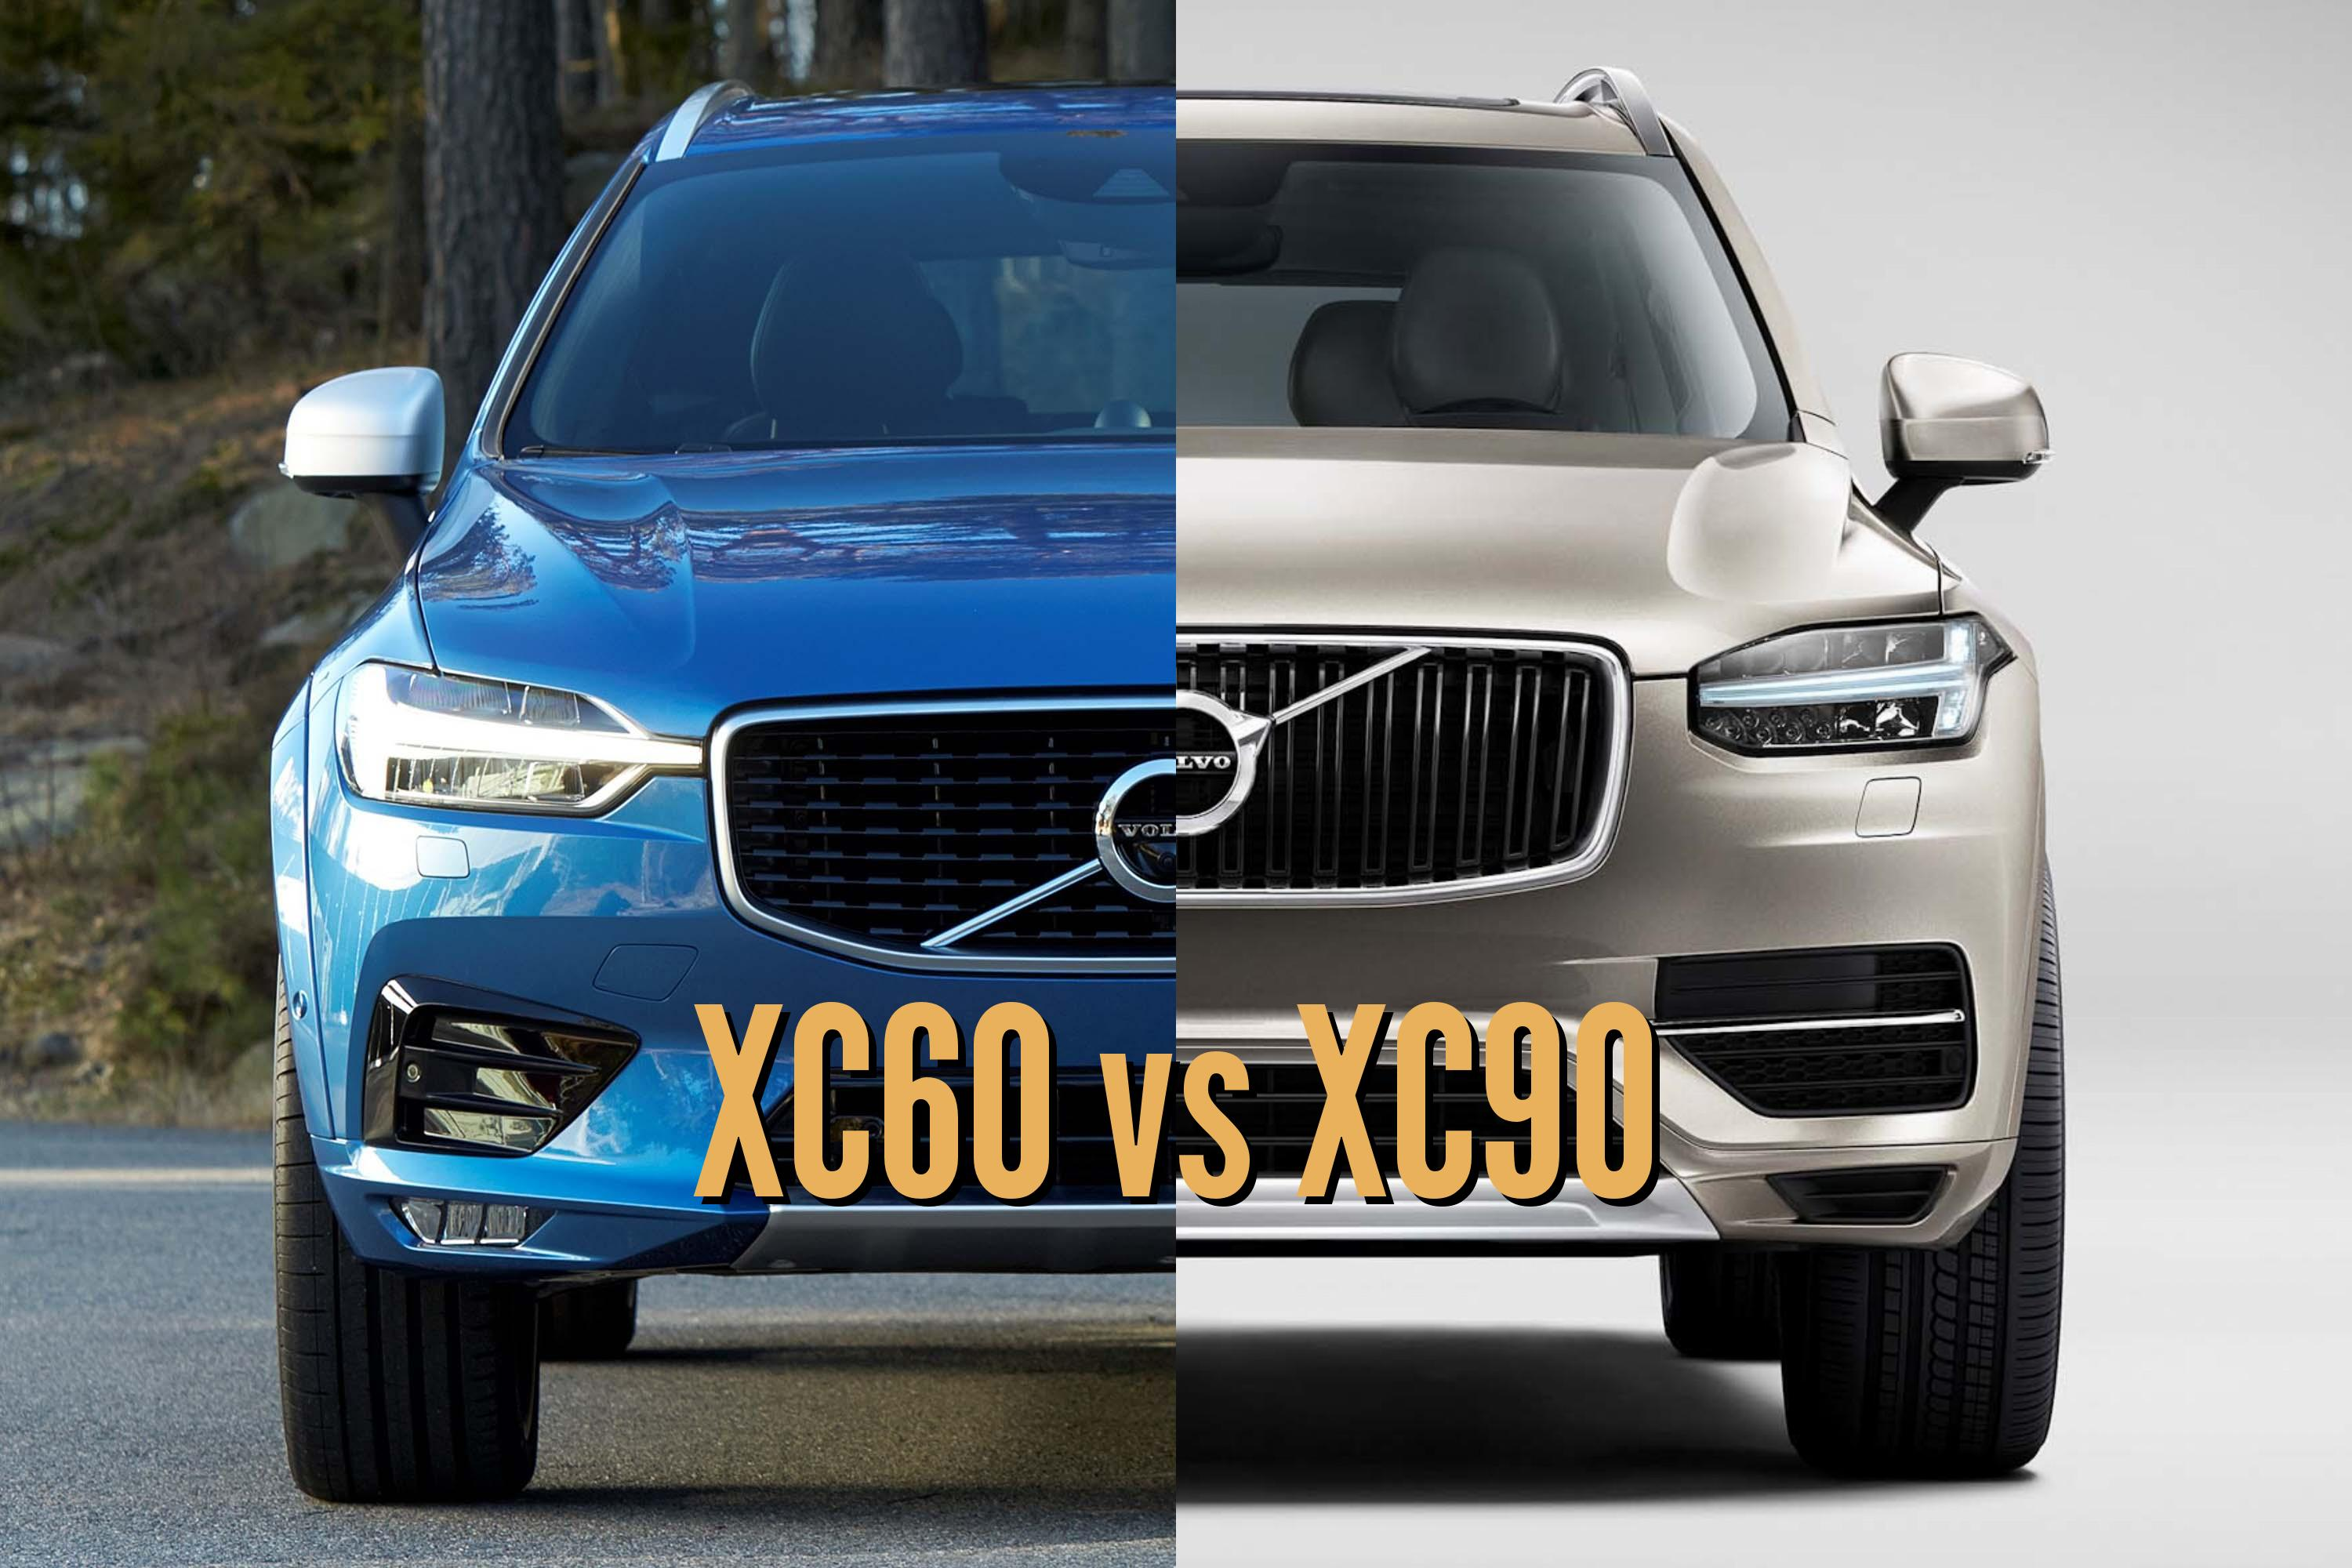 2018 volvo xc60 vs 2017 xc90 differences in photo comparison between the axles. Black Bedroom Furniture Sets. Home Design Ideas